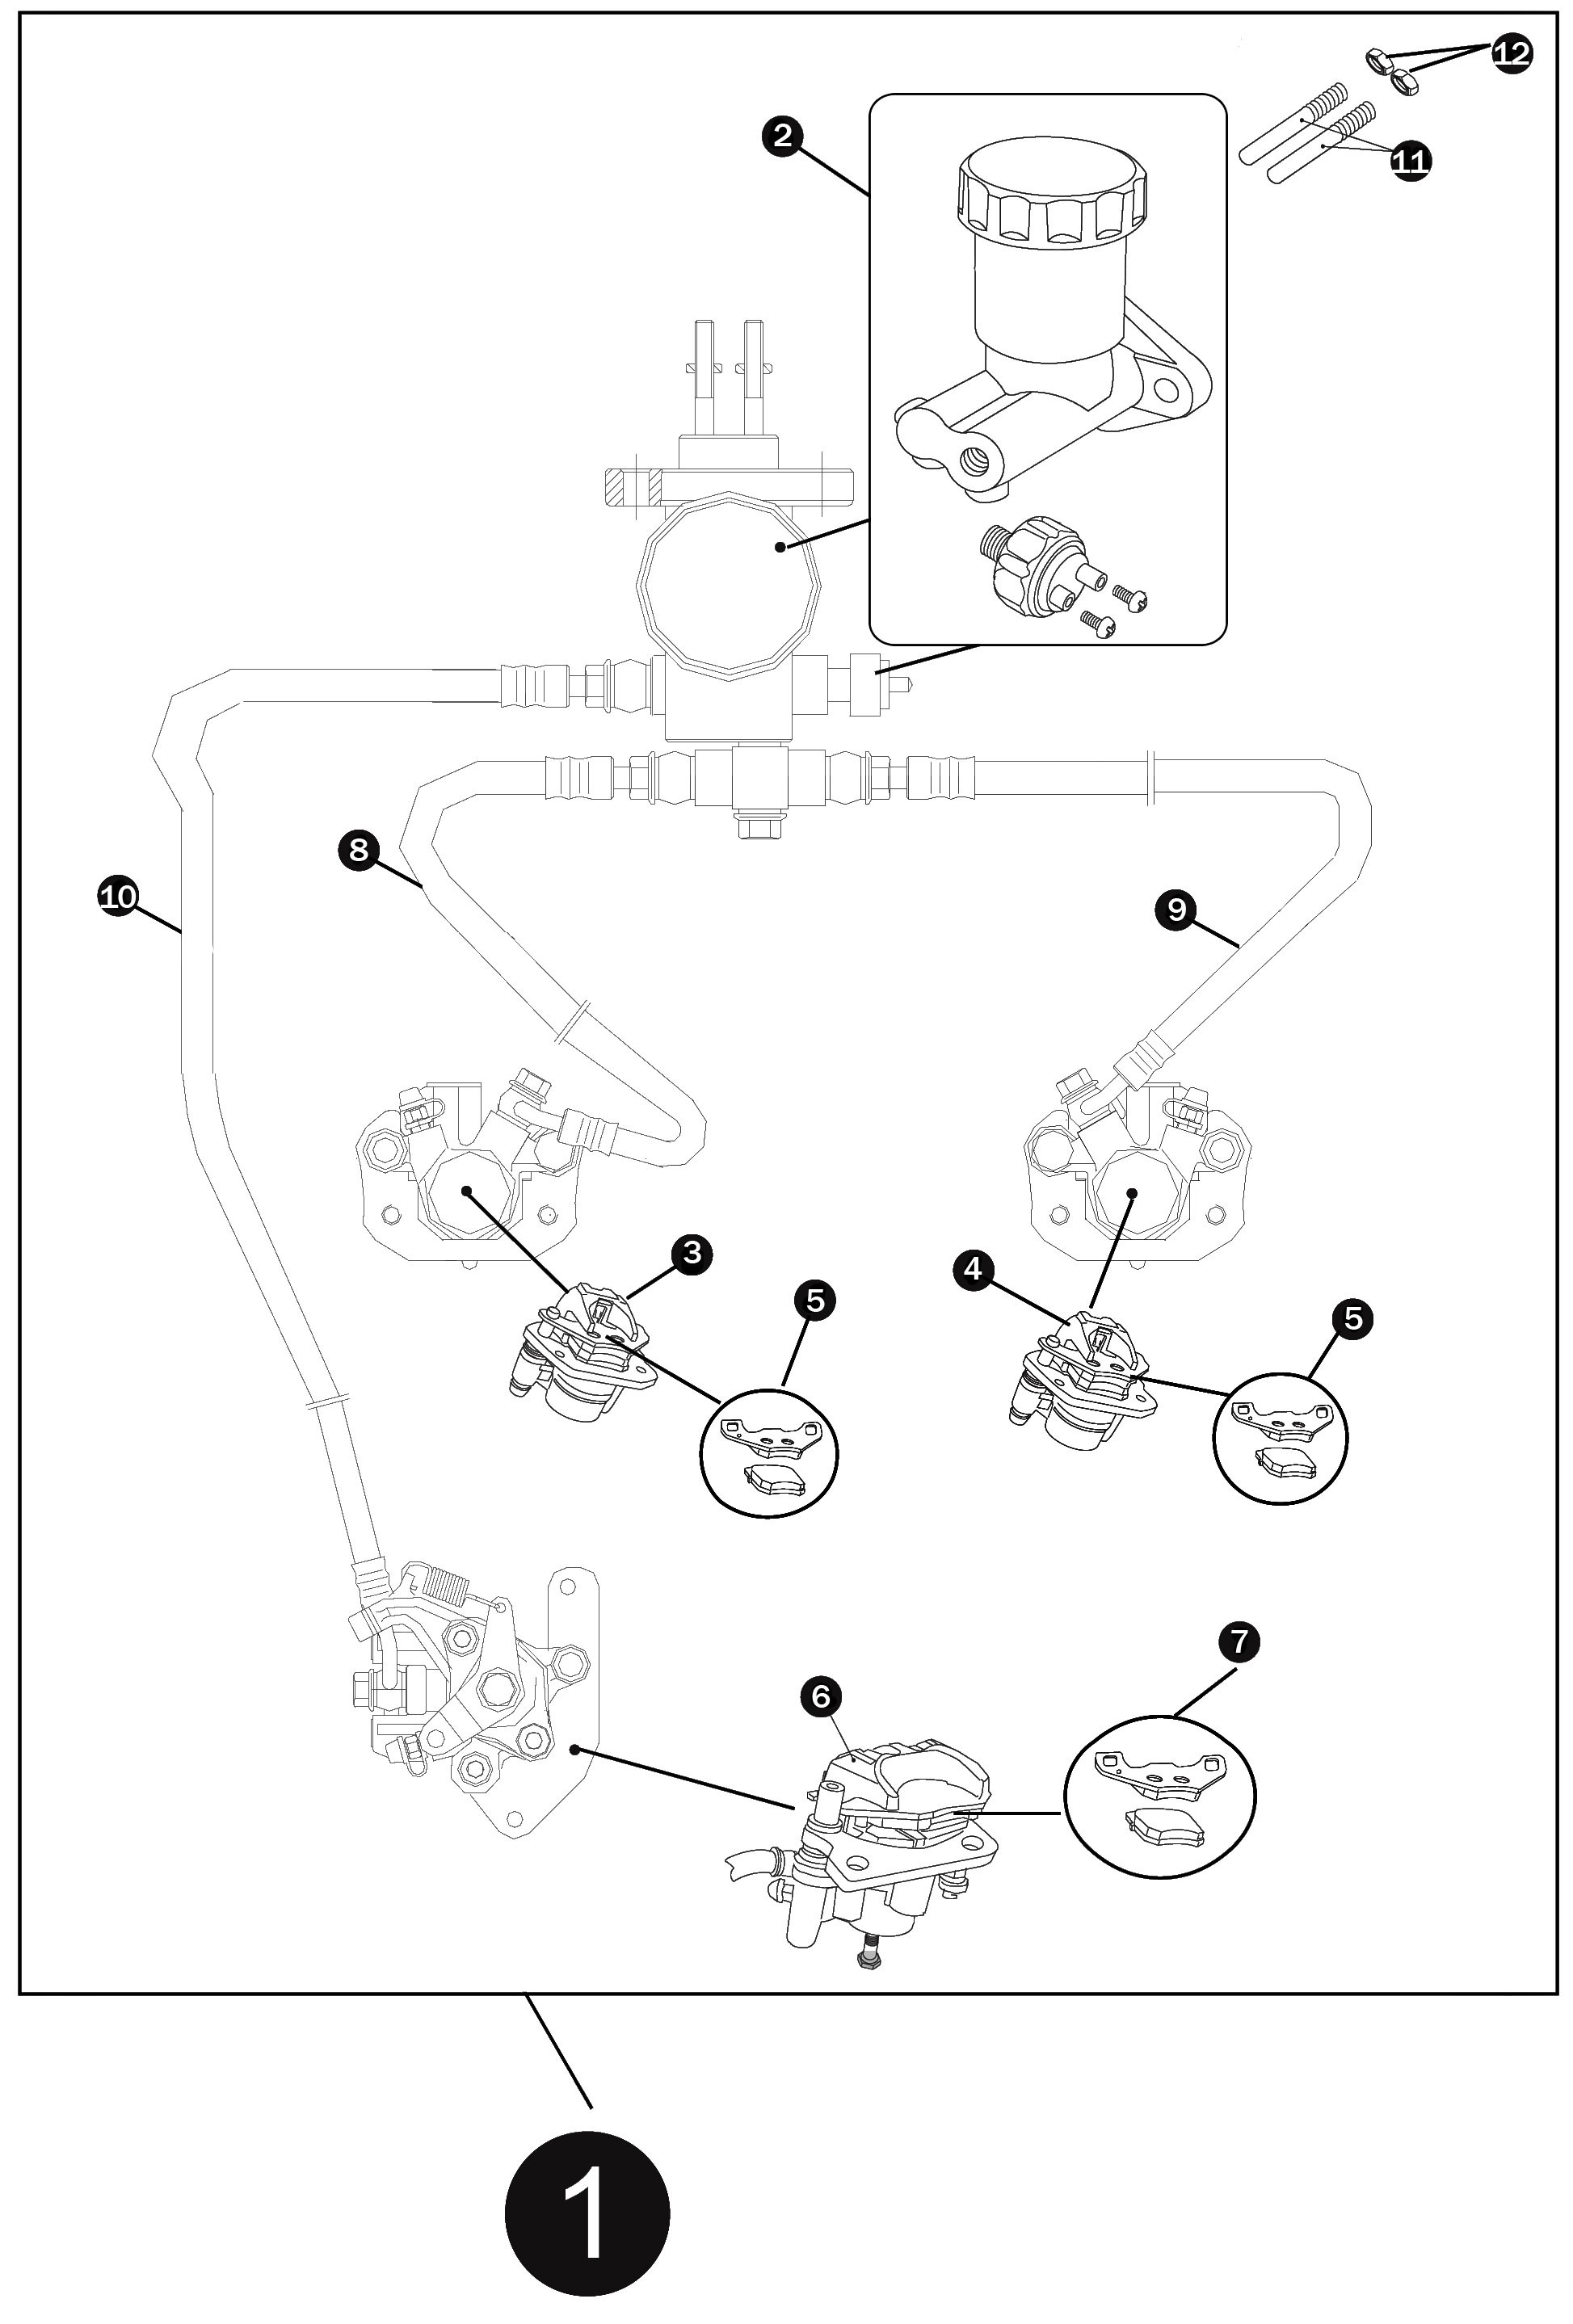 Bike Brake Parts Diagram | My Wiring DIagram